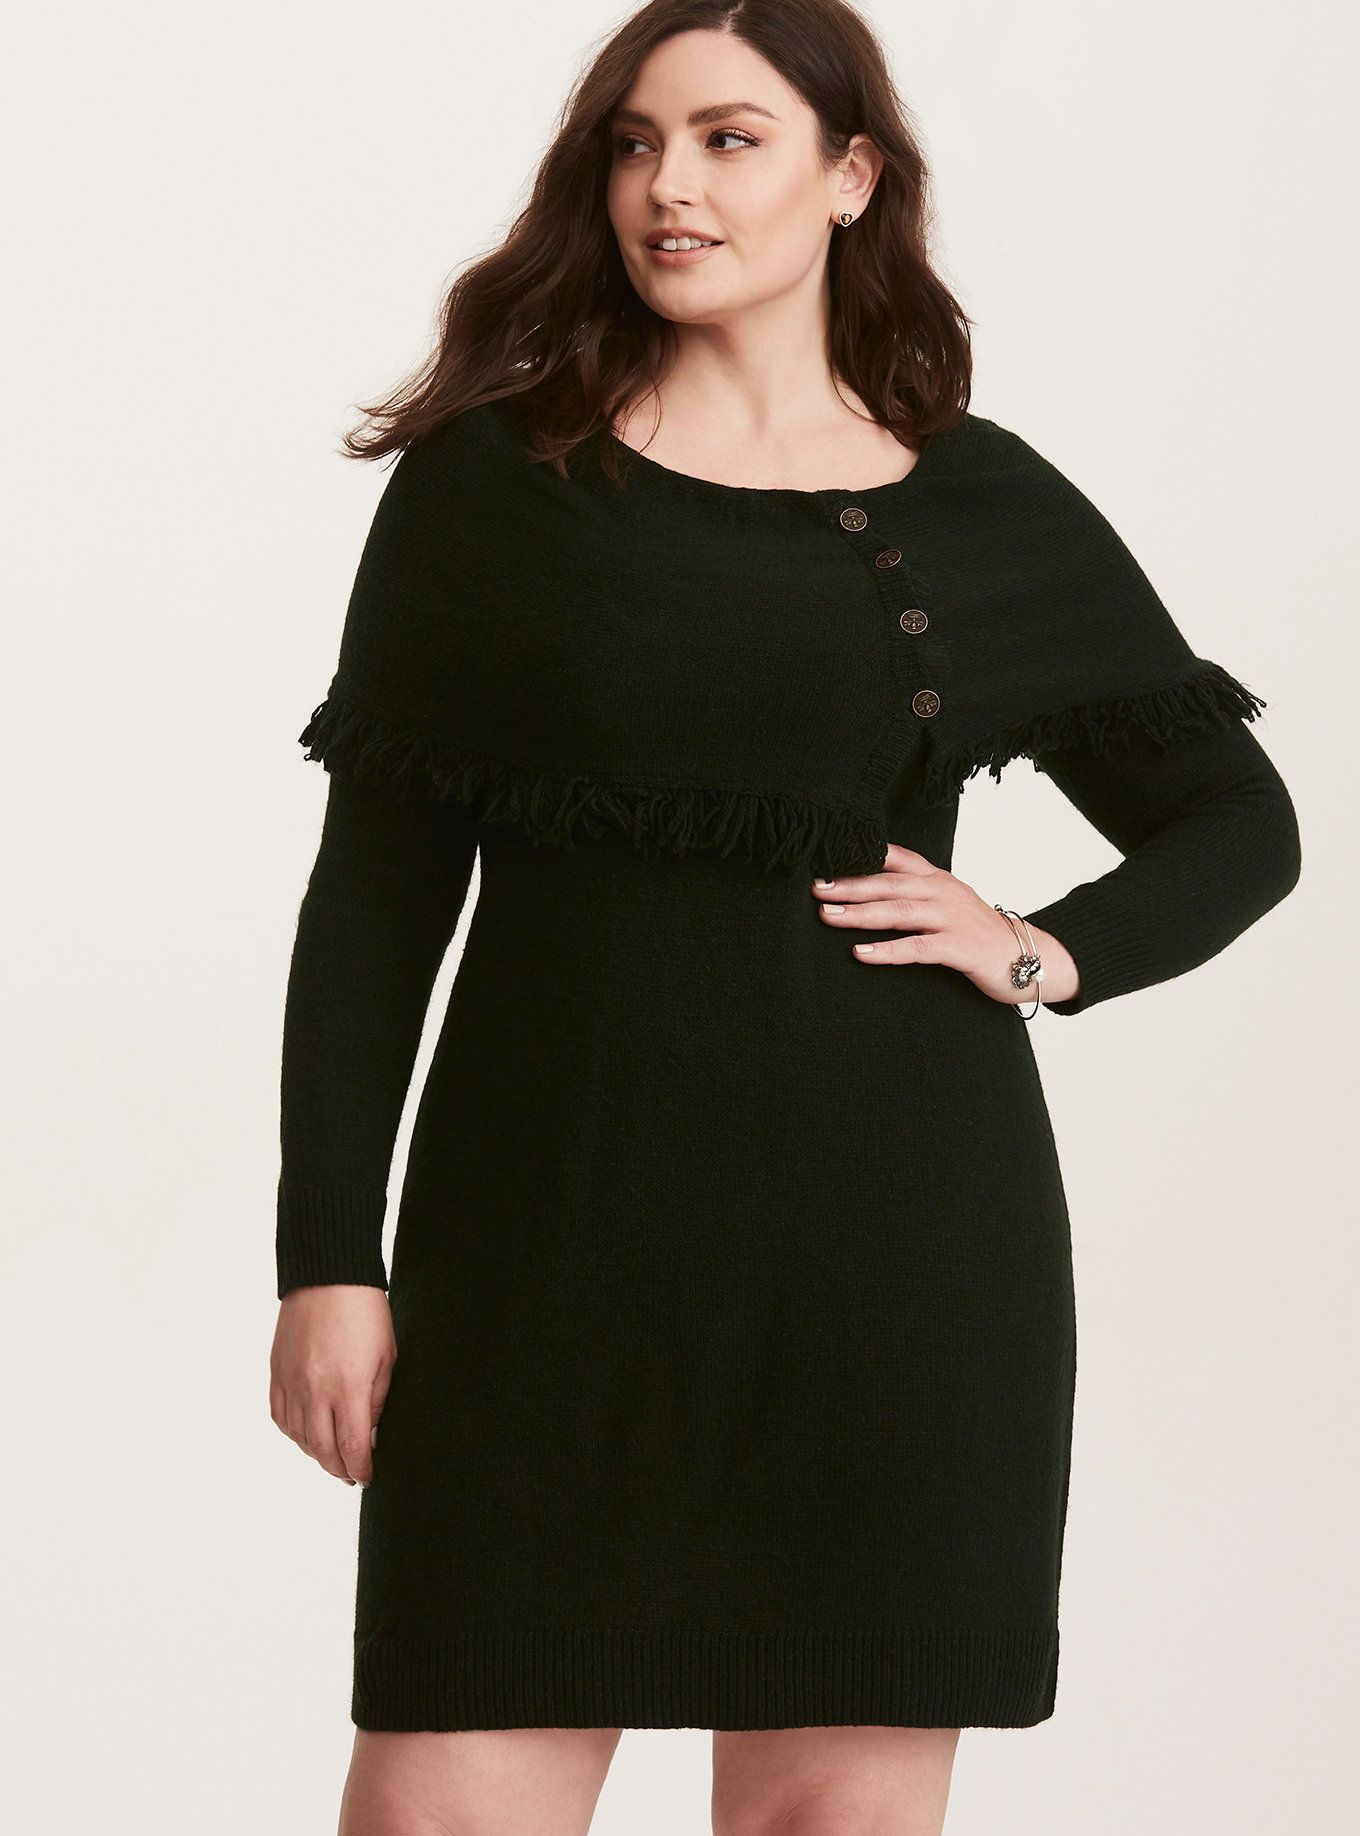 8d8dbb427 This oversize cozy knit sweater dress keeps you snuggled up